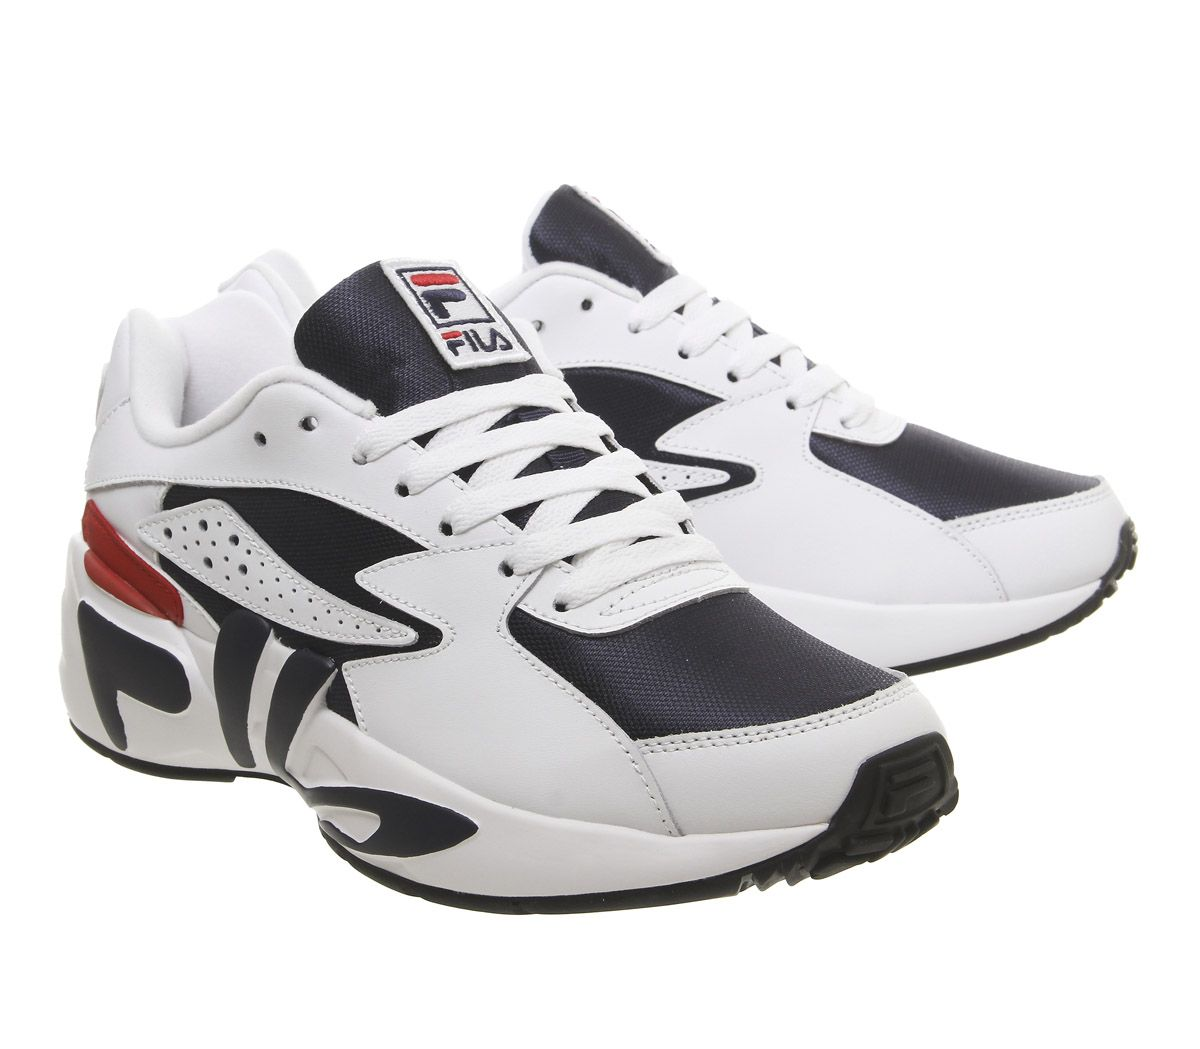 Fila-Mindblower-Trainers-White-Navy-Red-Trainers-Shoes thumbnail 7